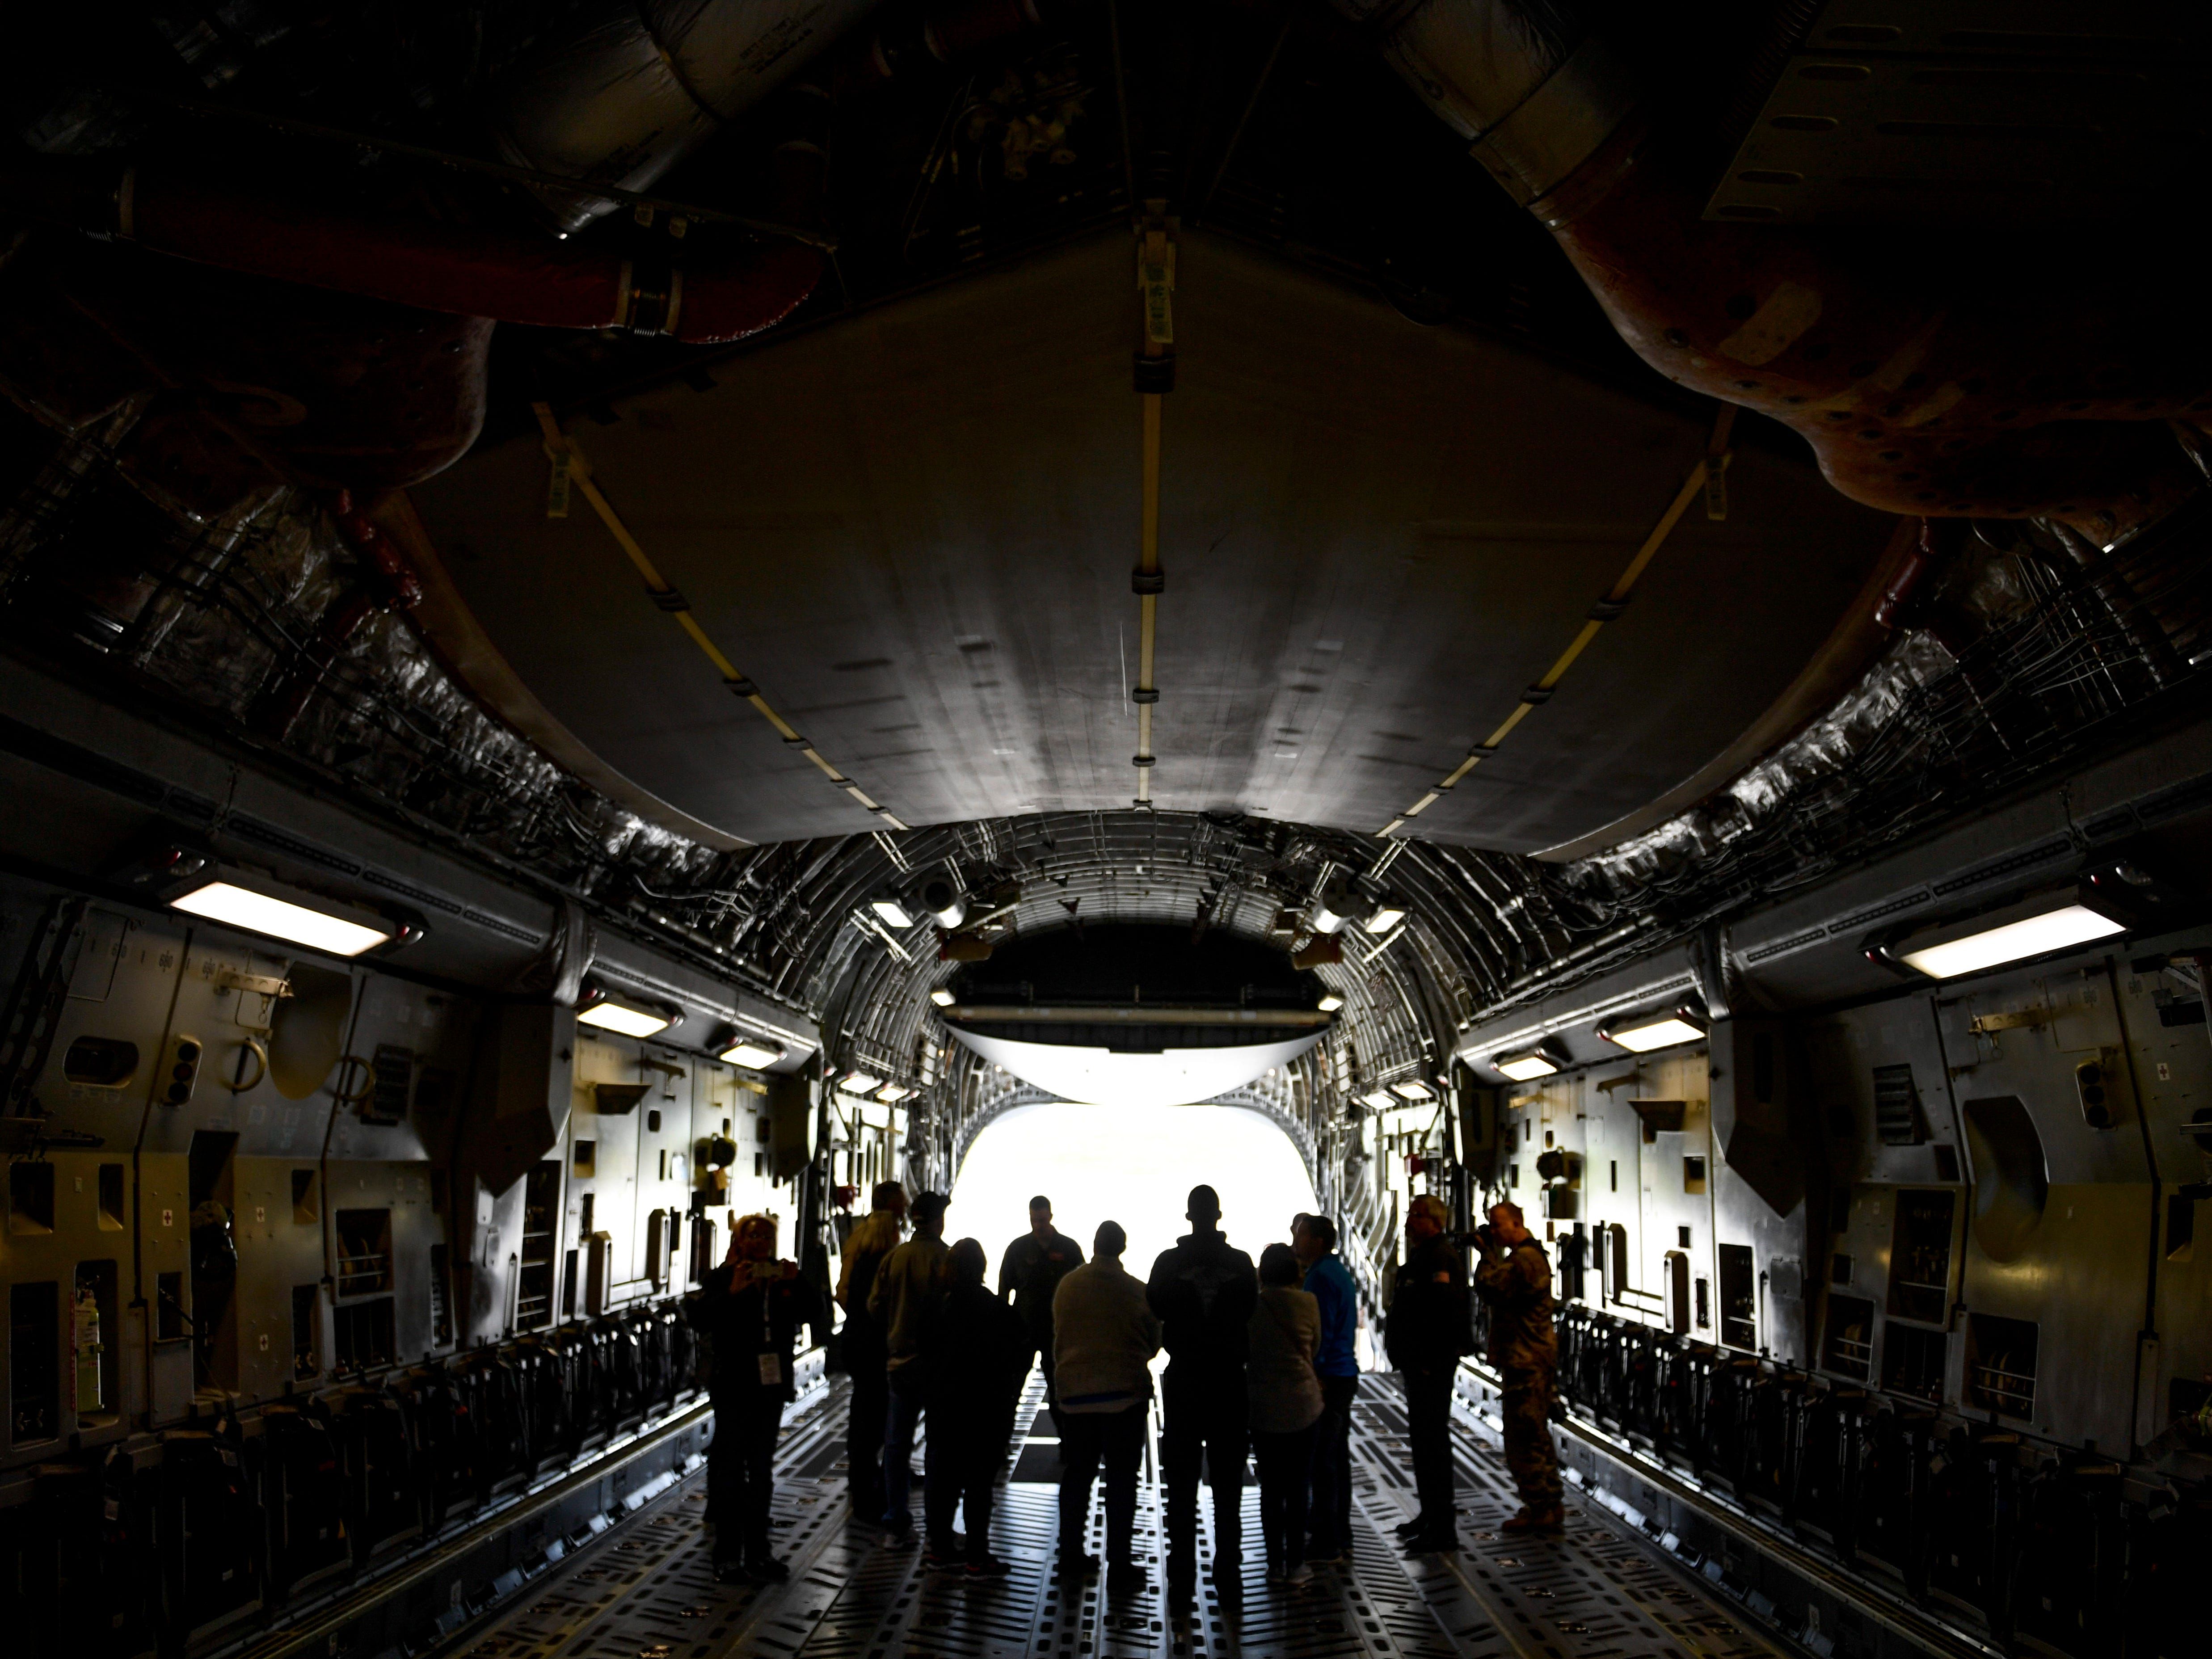 Attendees stand and chat with National Guardsmen in the fuselage of a C-17 during the annual Bosslift event put on by Employer Support of the Guard and Reserve (ESGR) and the Tennessee National Guard at 164th Airlift Wing in Memphis, Tenn., on Thursday, Nov. 8, 2018.